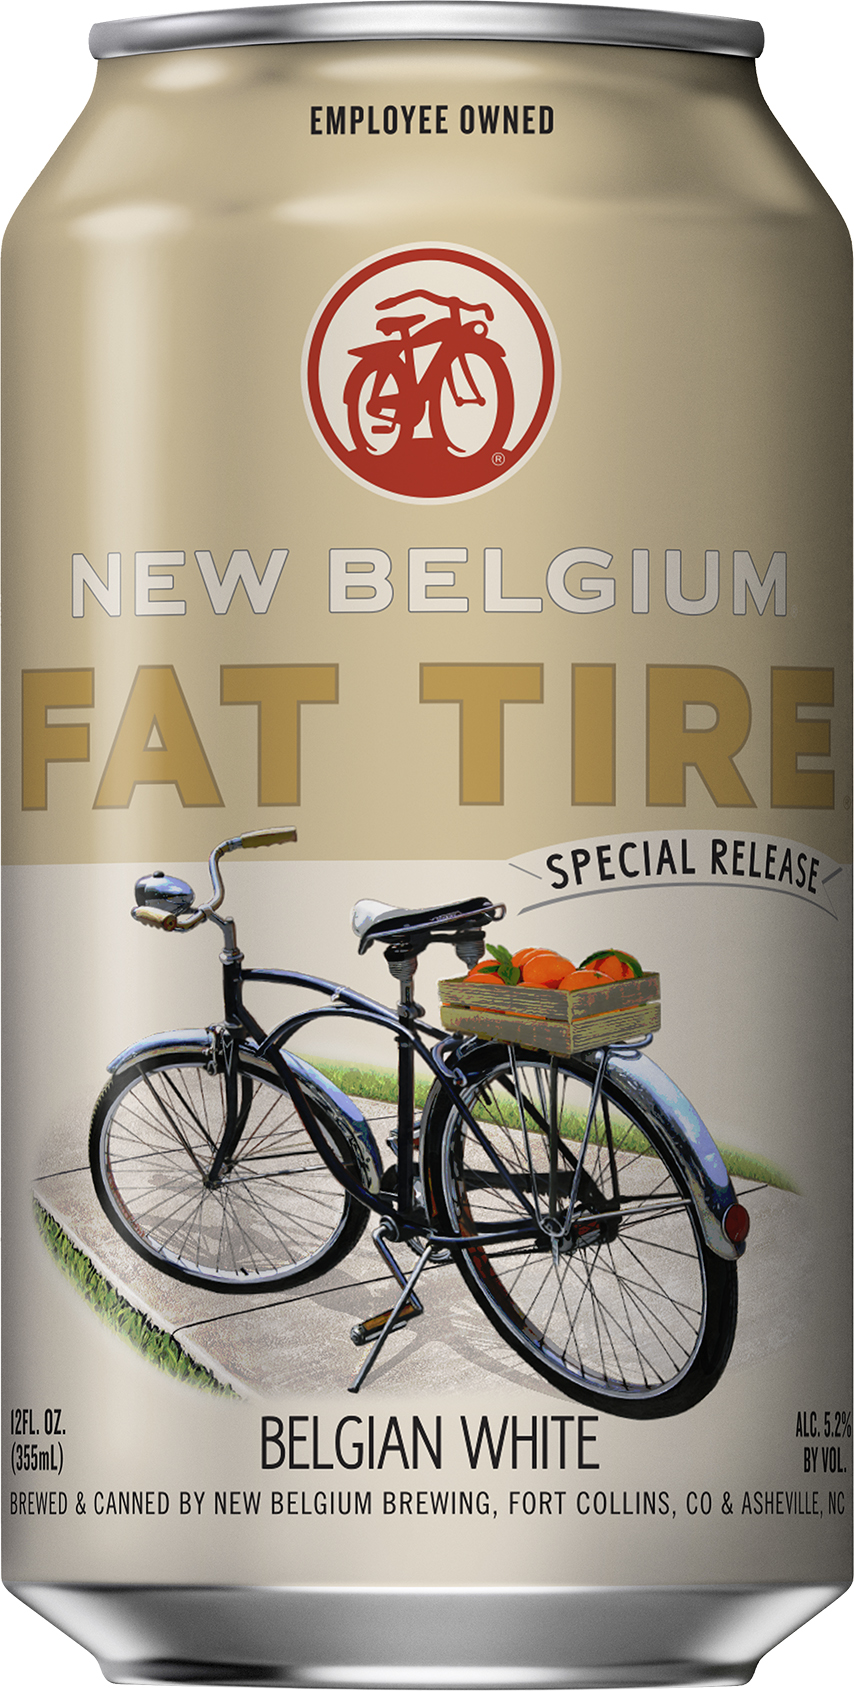 New Belgium Brewing Expands Its Fat Tire Brand With Fat Tire Belgian